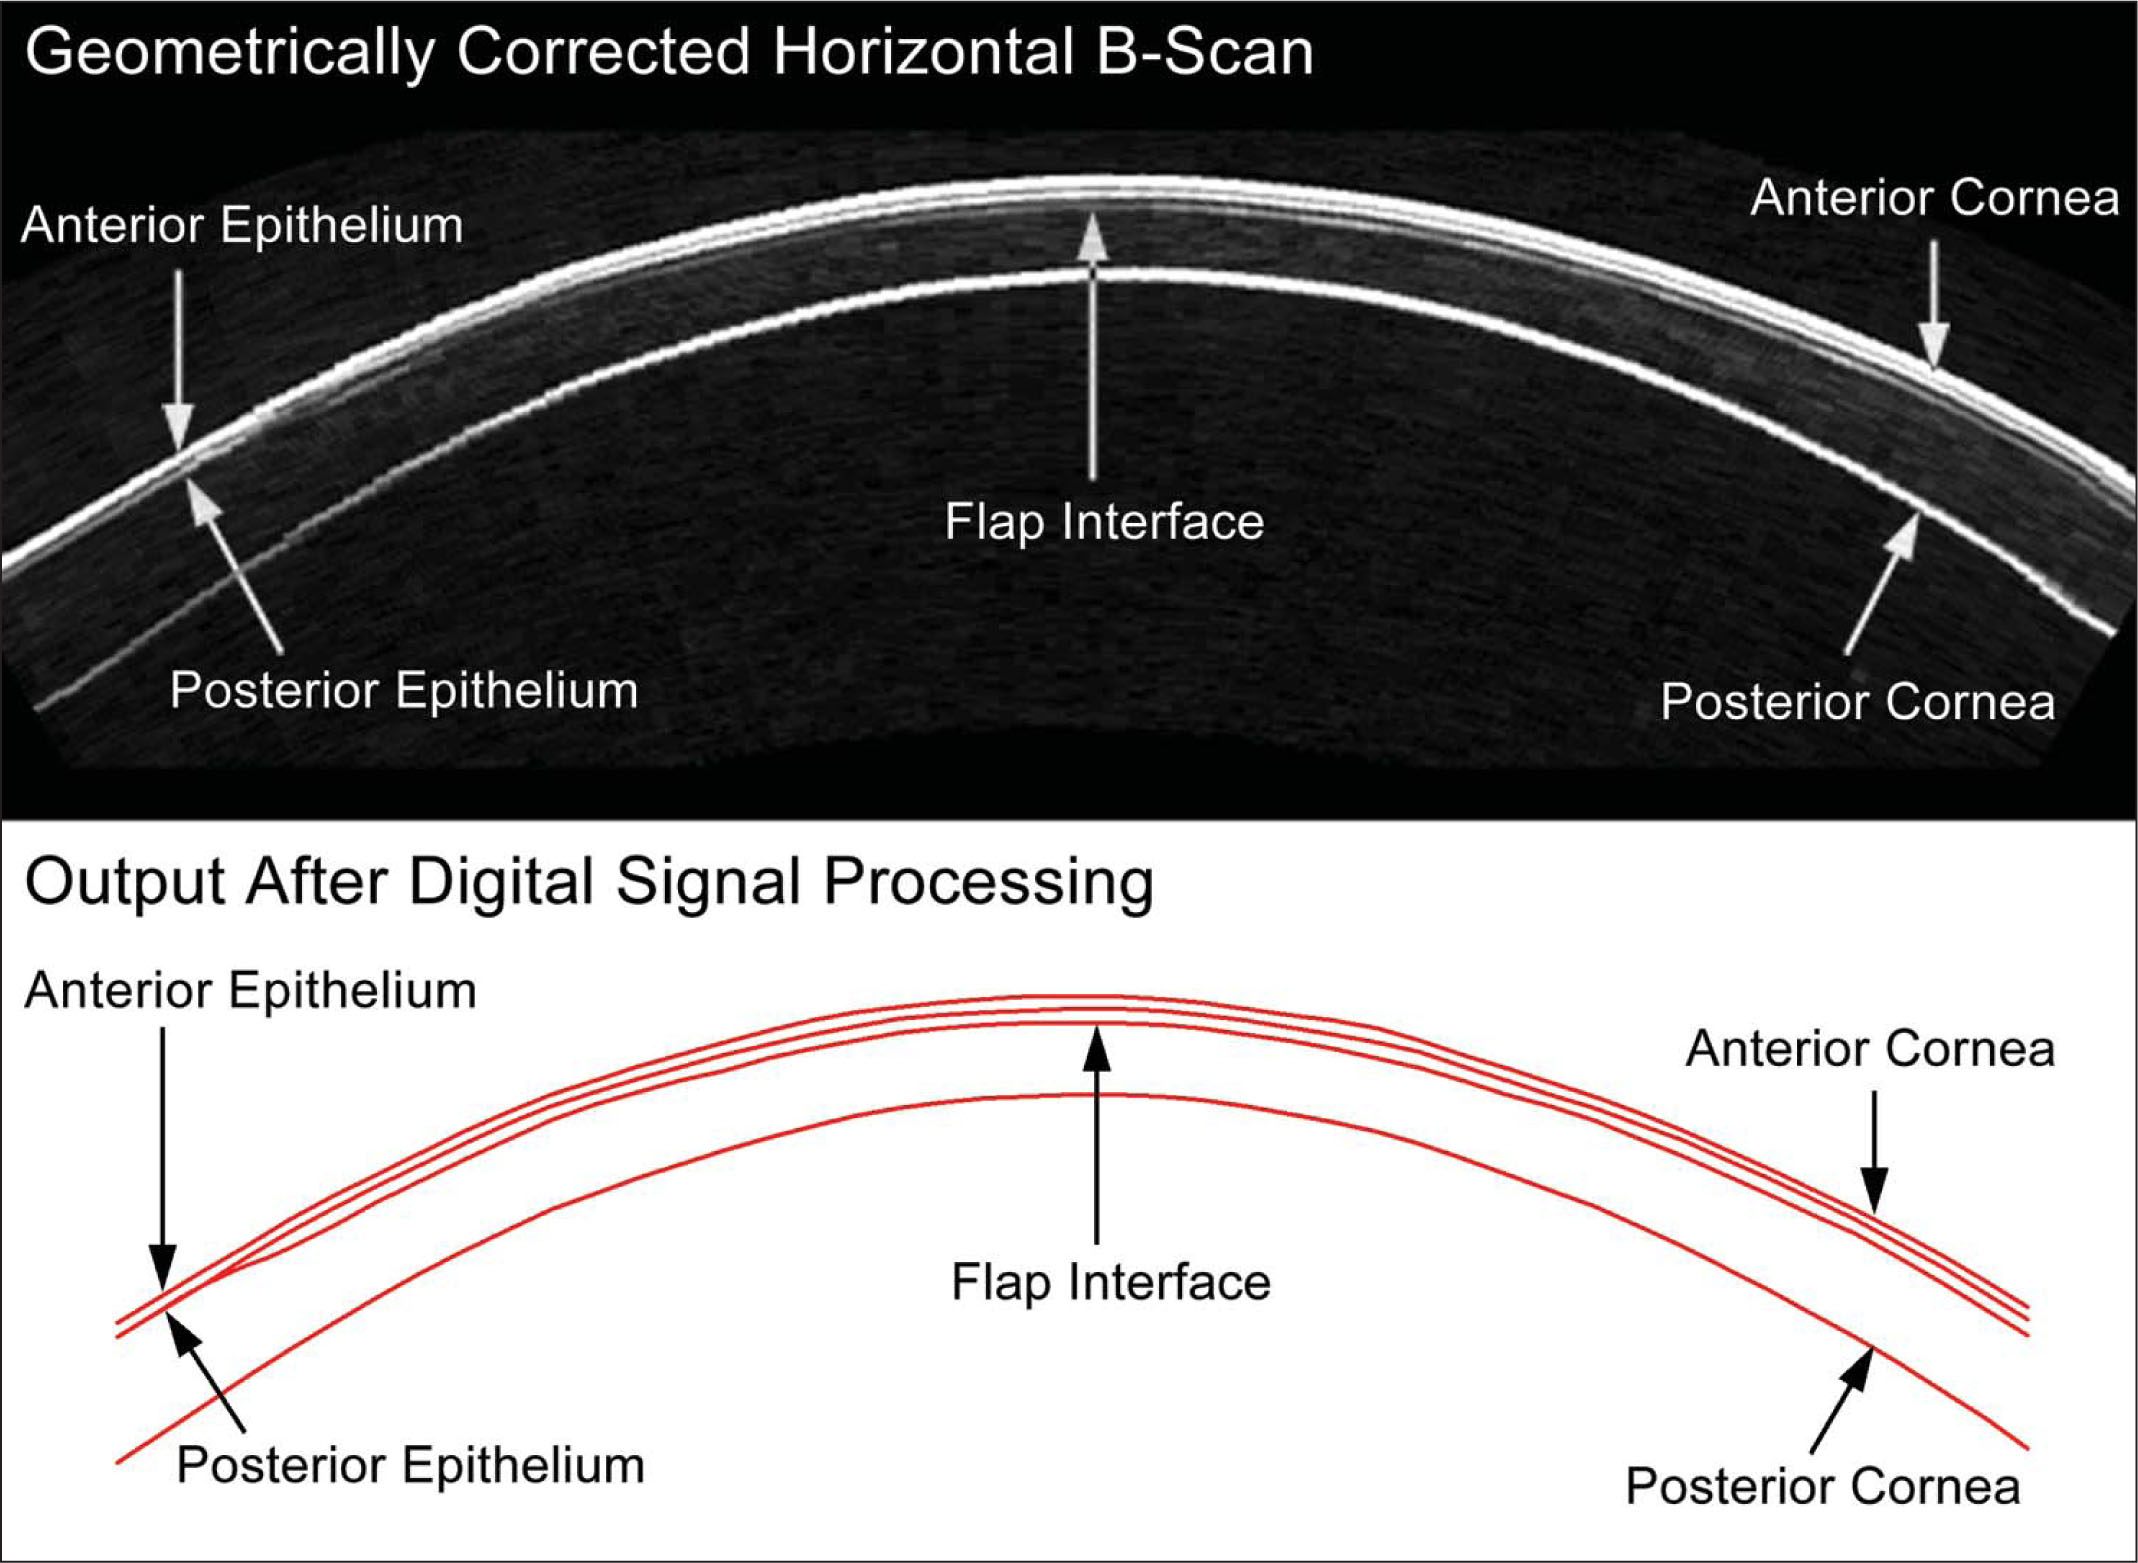 Artemis Very-High Frequency Digital Ultrasound Horizontal B-Scan of a Cornea with a Flap Created Using the VisuMax Femtosecond Laser. Centrally, the Reinstein Flap Thickness Was Measured as 113 μm, Which Was 3 μm Thicker than the Predicted Flap Thickness of 110 μm. Digital Signal Processing Is Performed on the B-Scan Signal and Layer Thickness Measurements Are Obtained by a Computer Algorithm on the I-Scan, Resulting in the Red Line Image of the Interfaces.